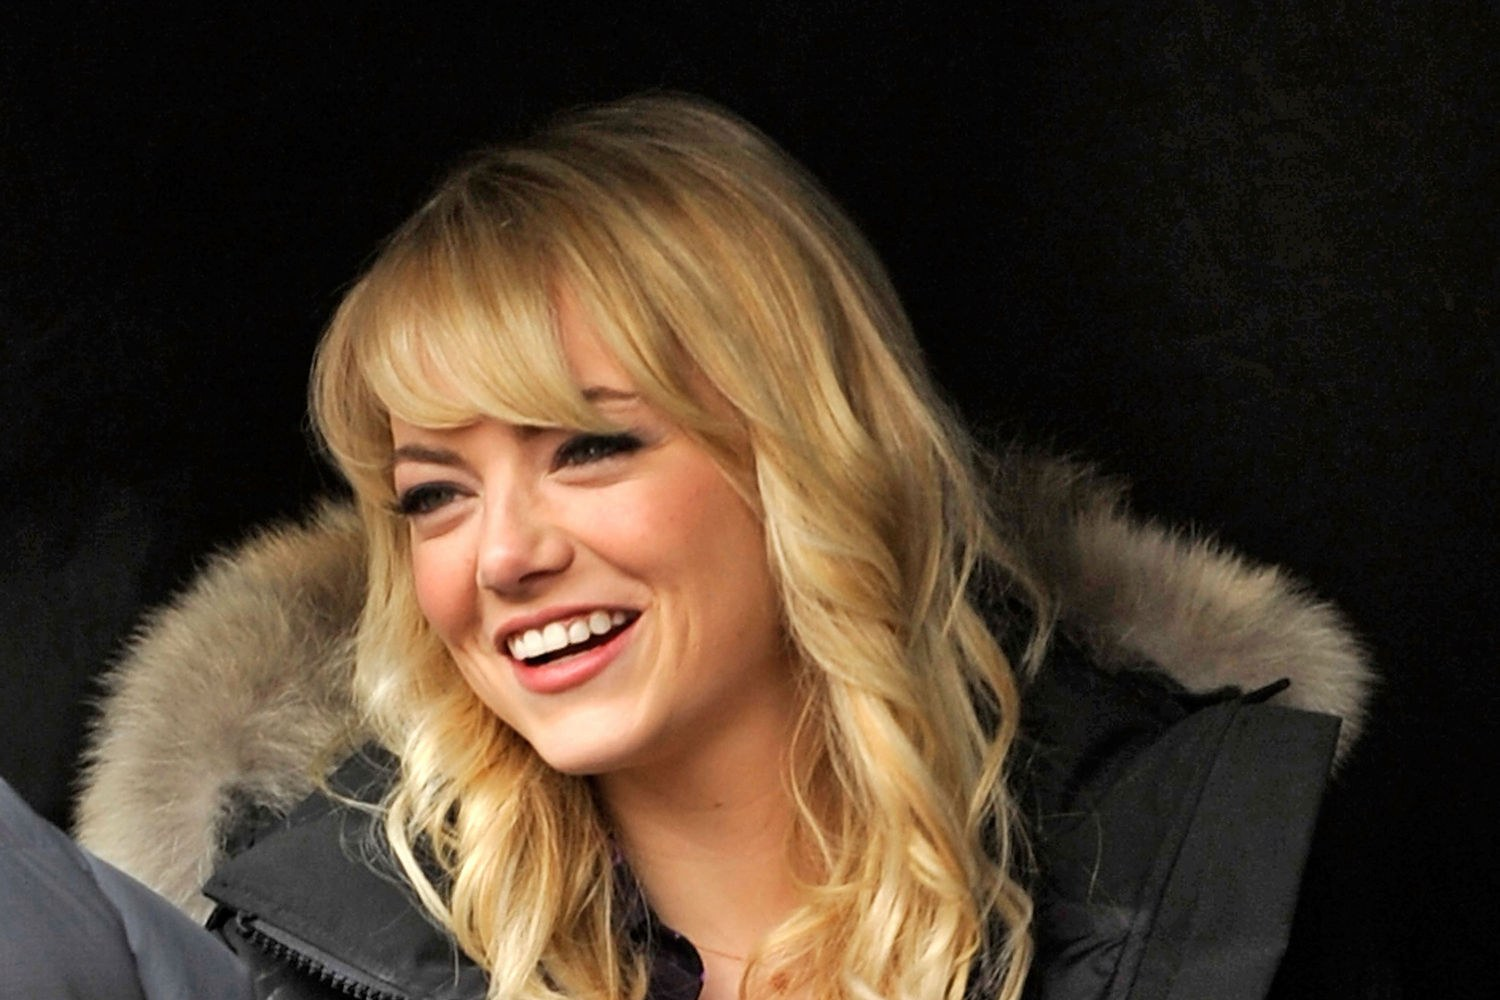 beauty-2013-04-08-emma-stone-bangs-haircut-celebrity-beauty-main